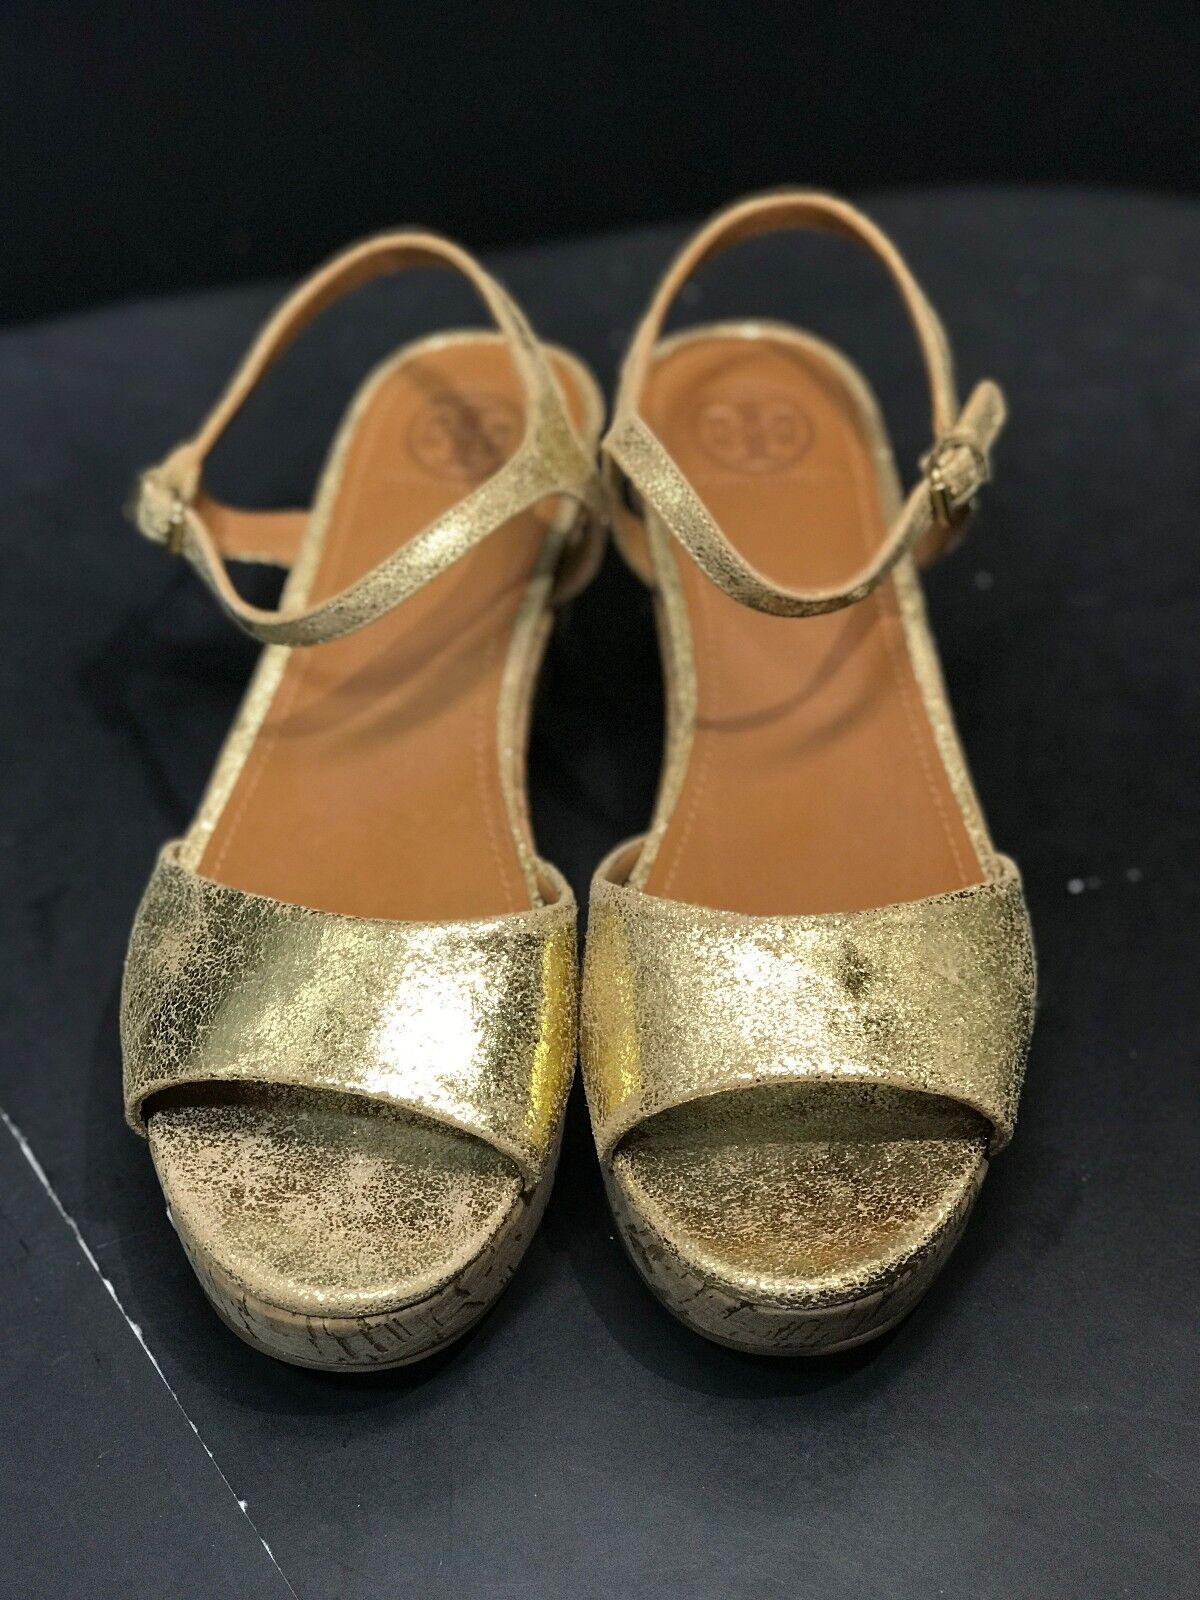 TORY BURCH WEDGE ABENA CRACKLED METALLIC GOLD LEATHER WOMEN SANDAL WEDGE BURCH SIZE US 11 a08871